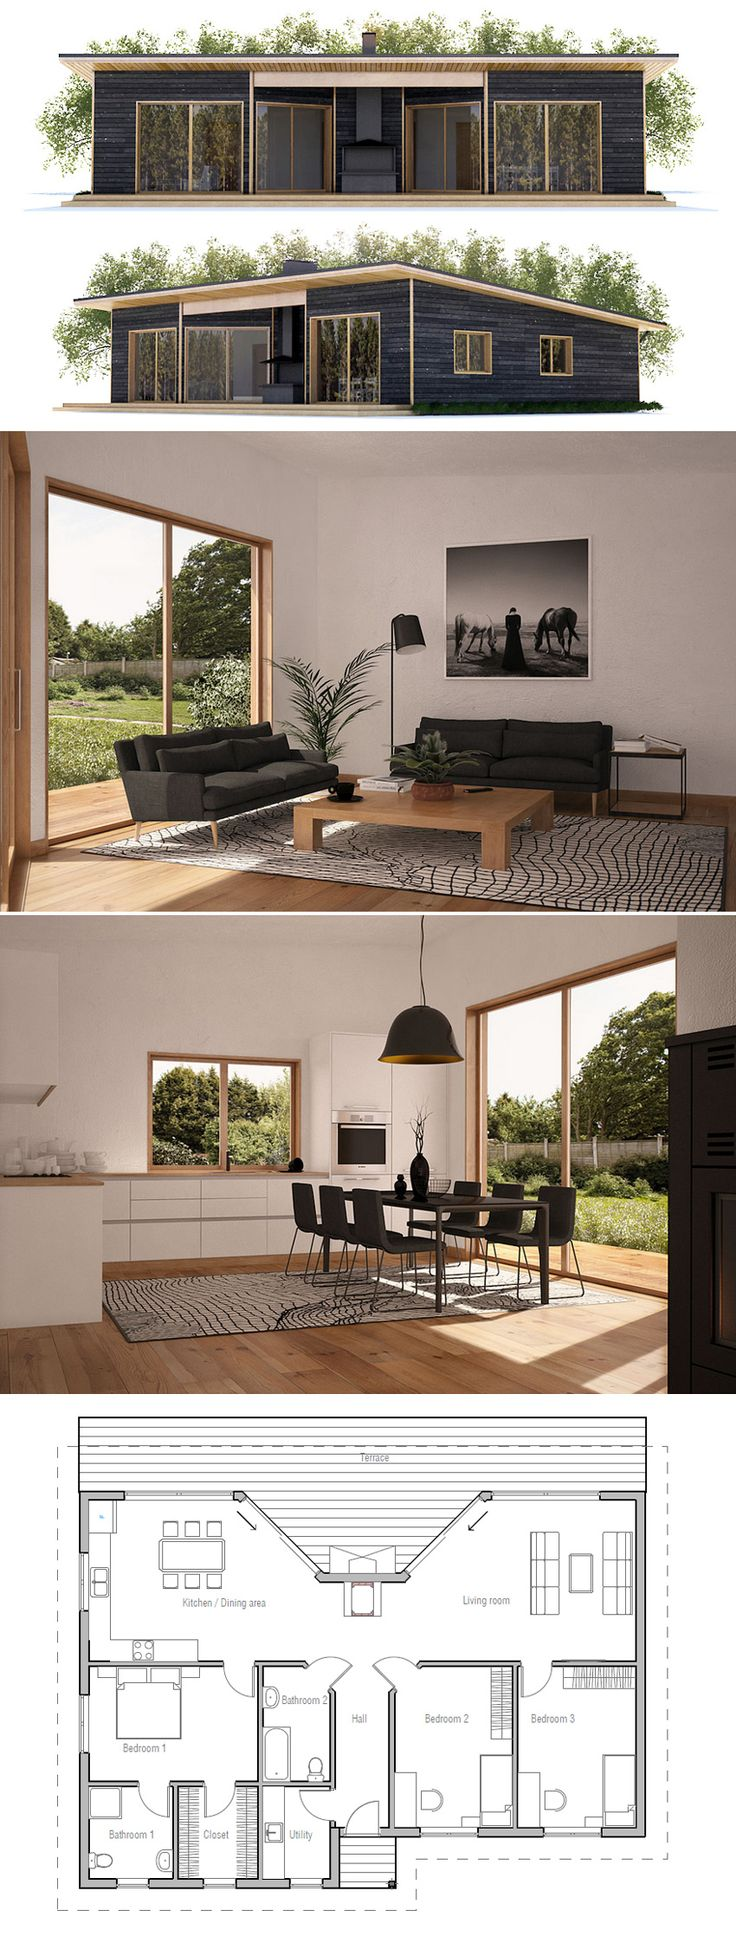 id e relooking cuisine plan de maison listspirit. Black Bedroom Furniture Sets. Home Design Ideas